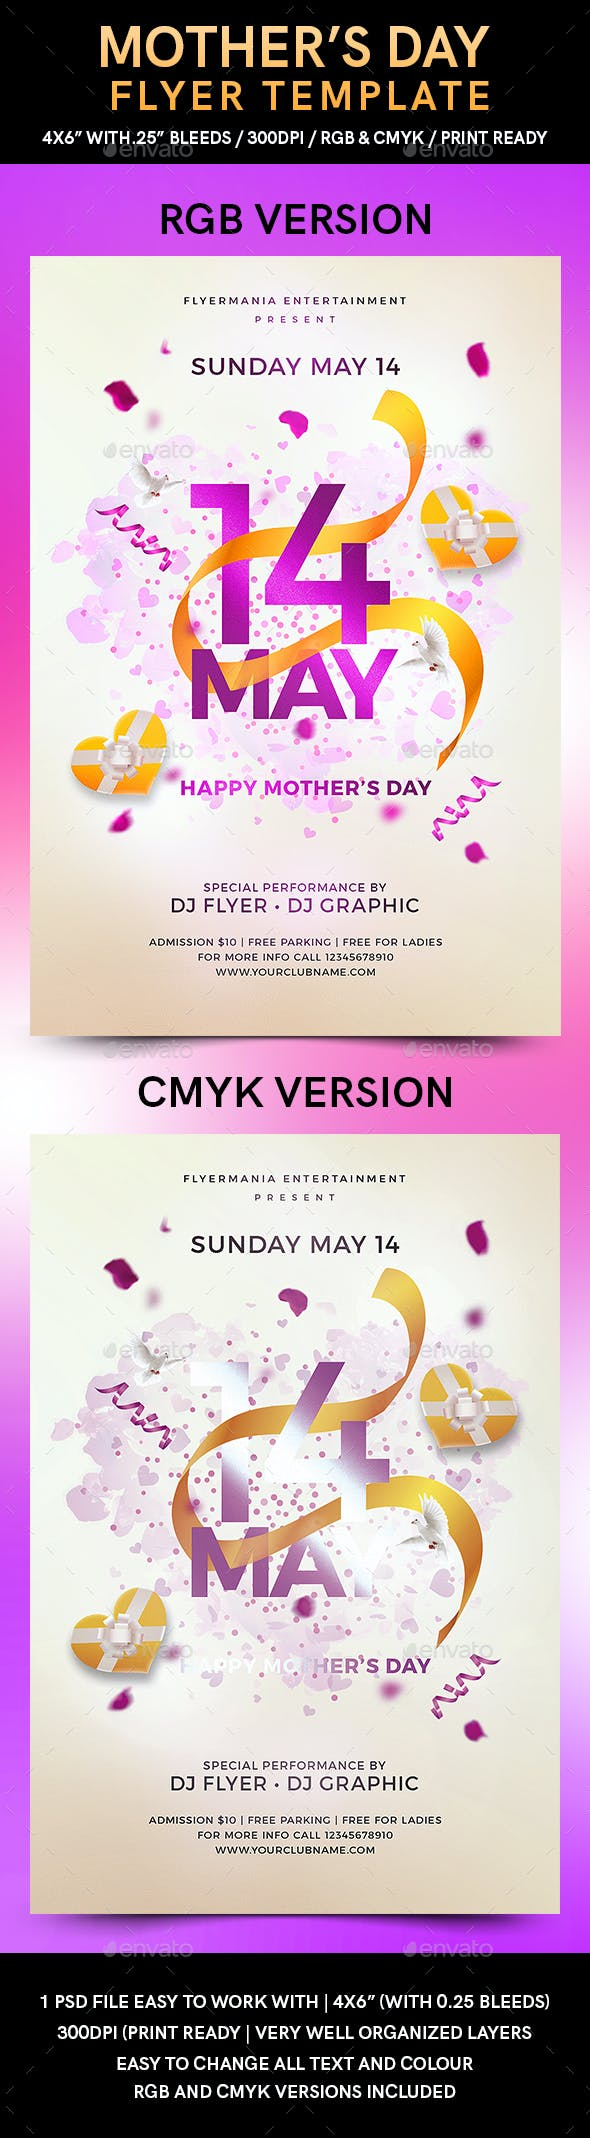 mother s day flyer template by flyermania graphicriver